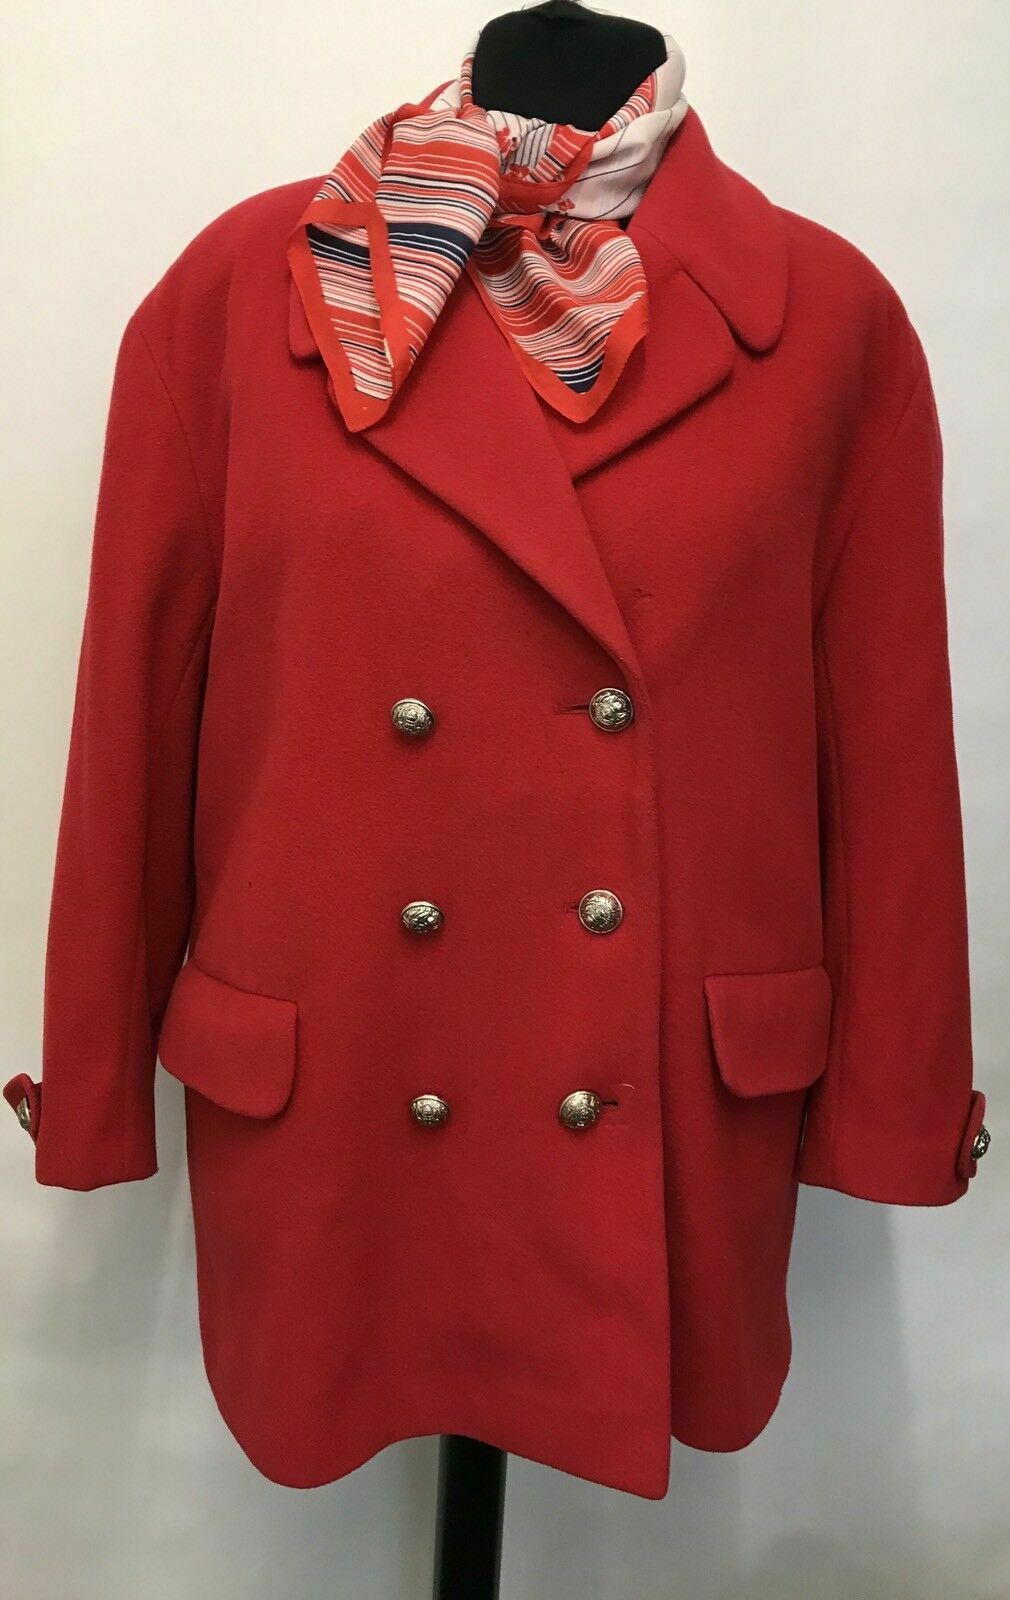 JT335 WOMEN'S VINTAGE FIRST AVENUE CASHMERE & WOOL RED COATS JACKETS SIZE 18